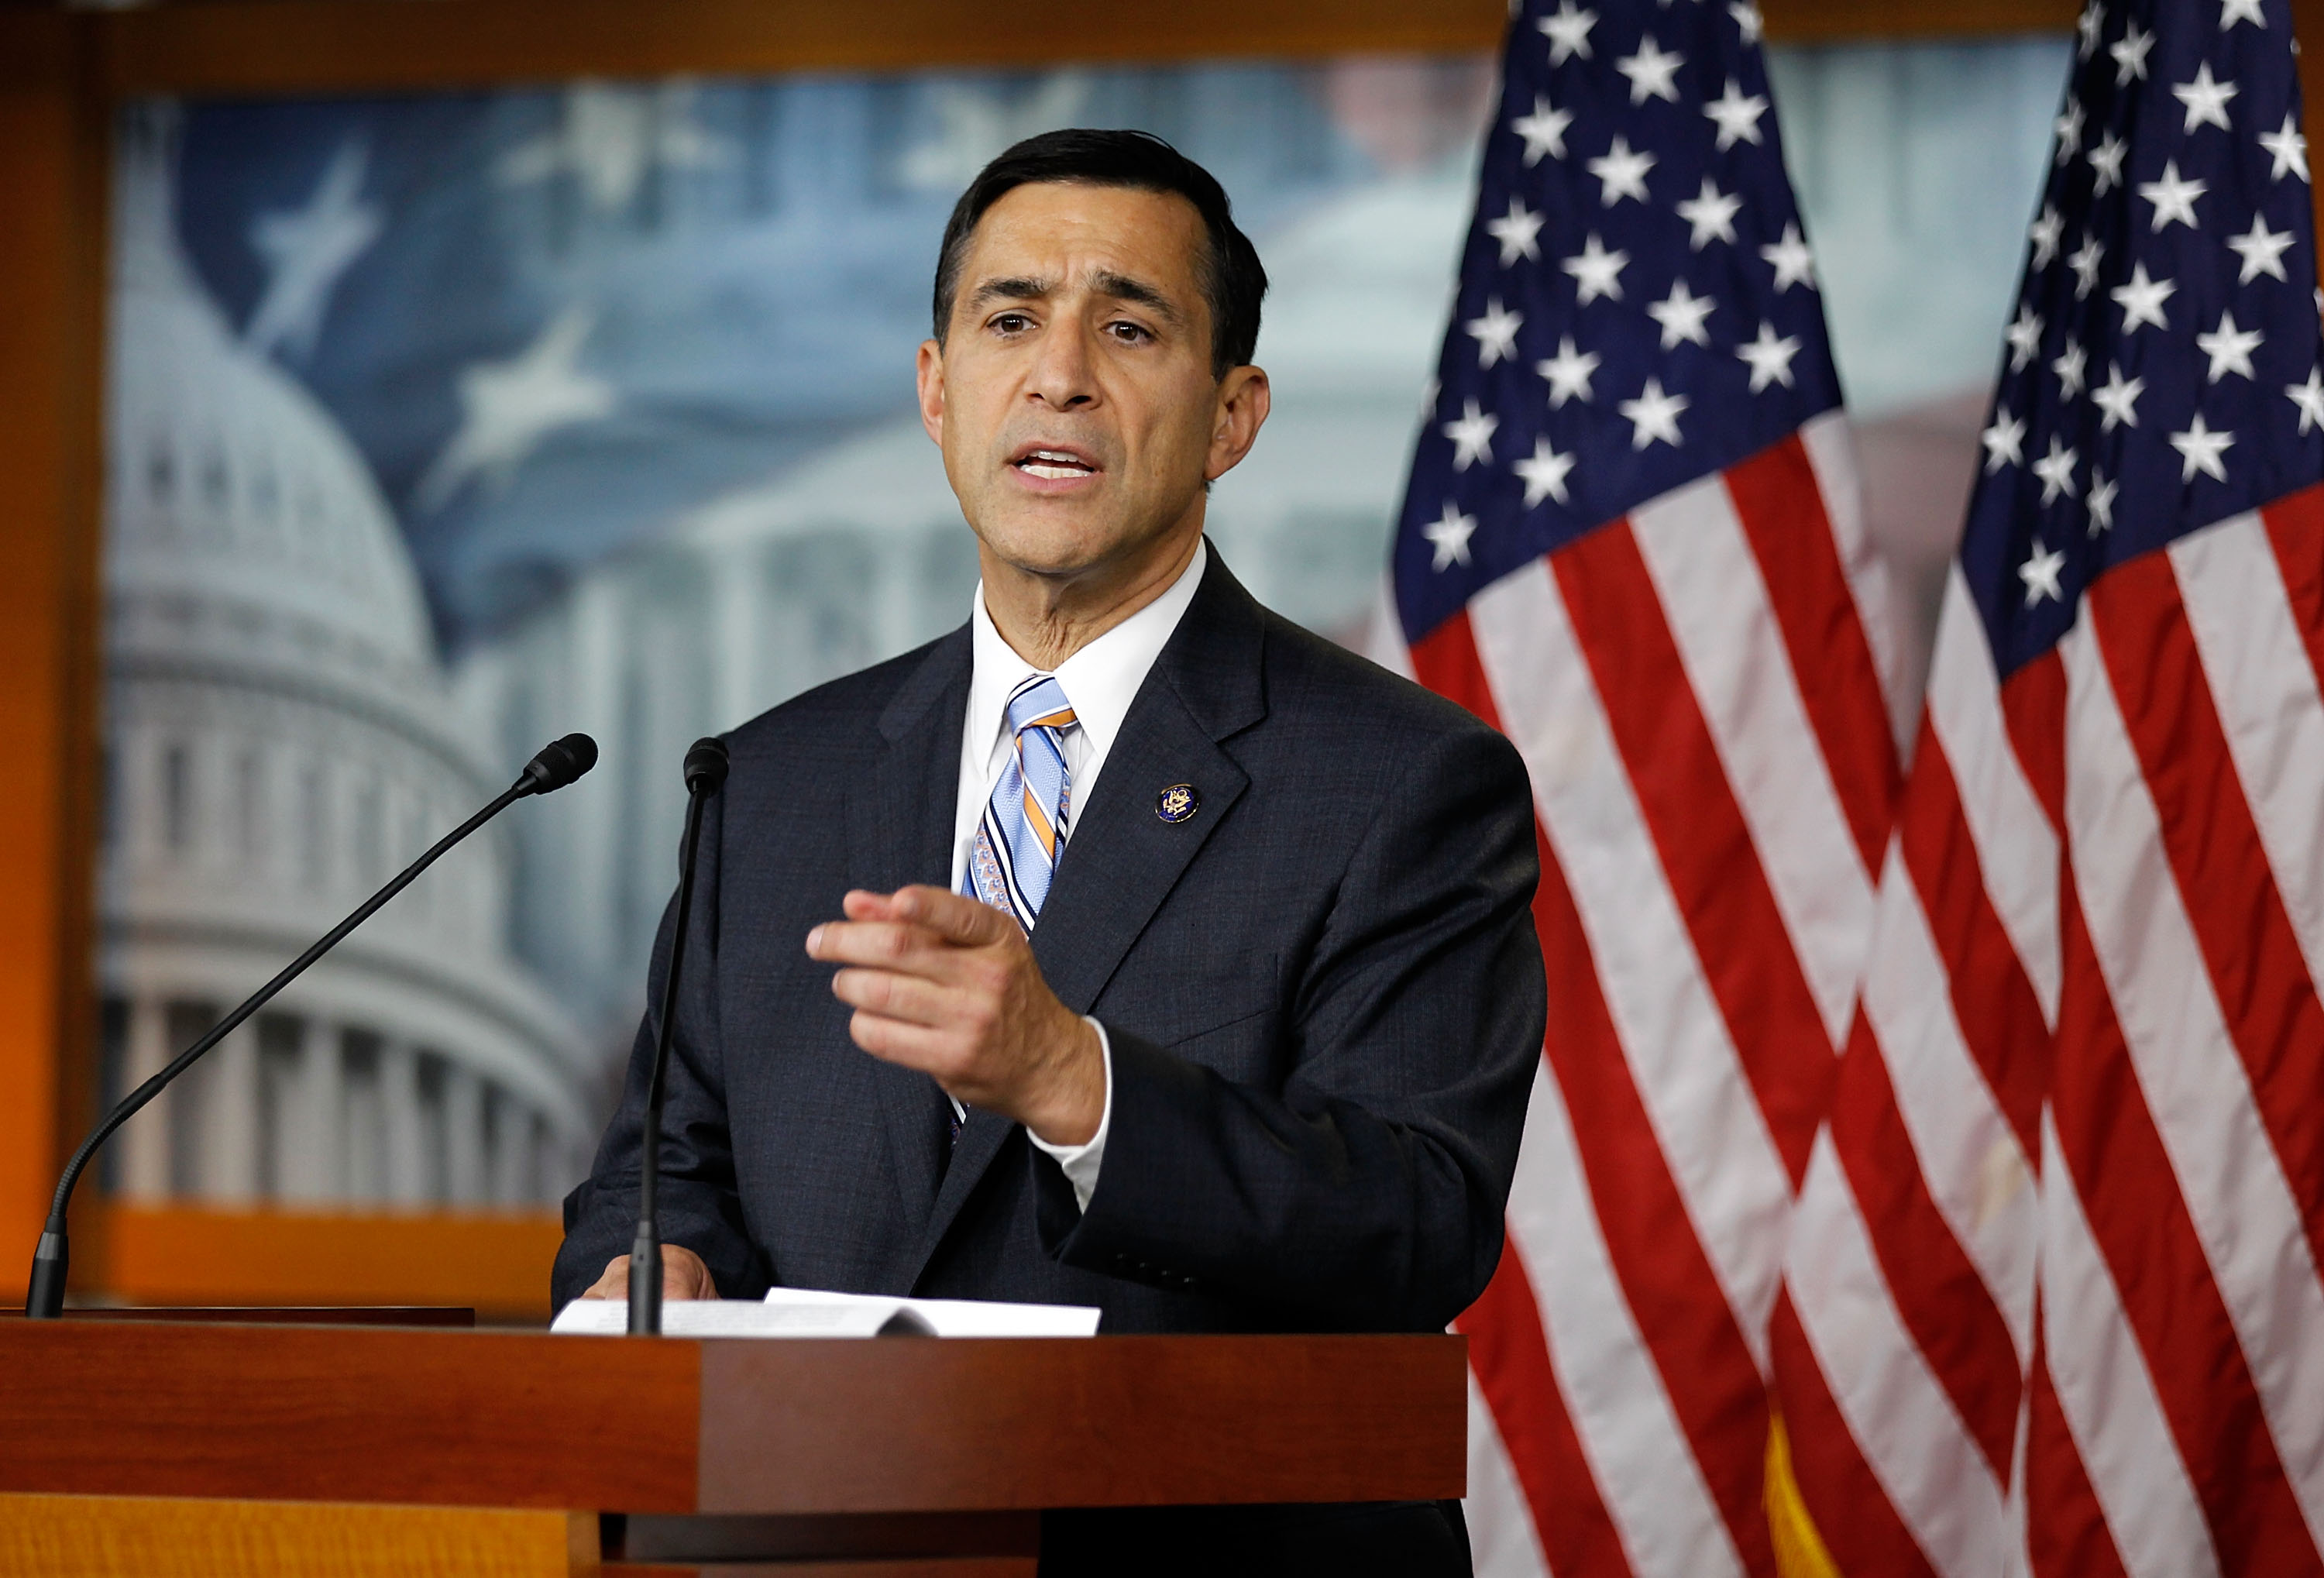 Rep. Issa (R-CA) Address Bill Clinton's Contact With Rep. Joe Sestak